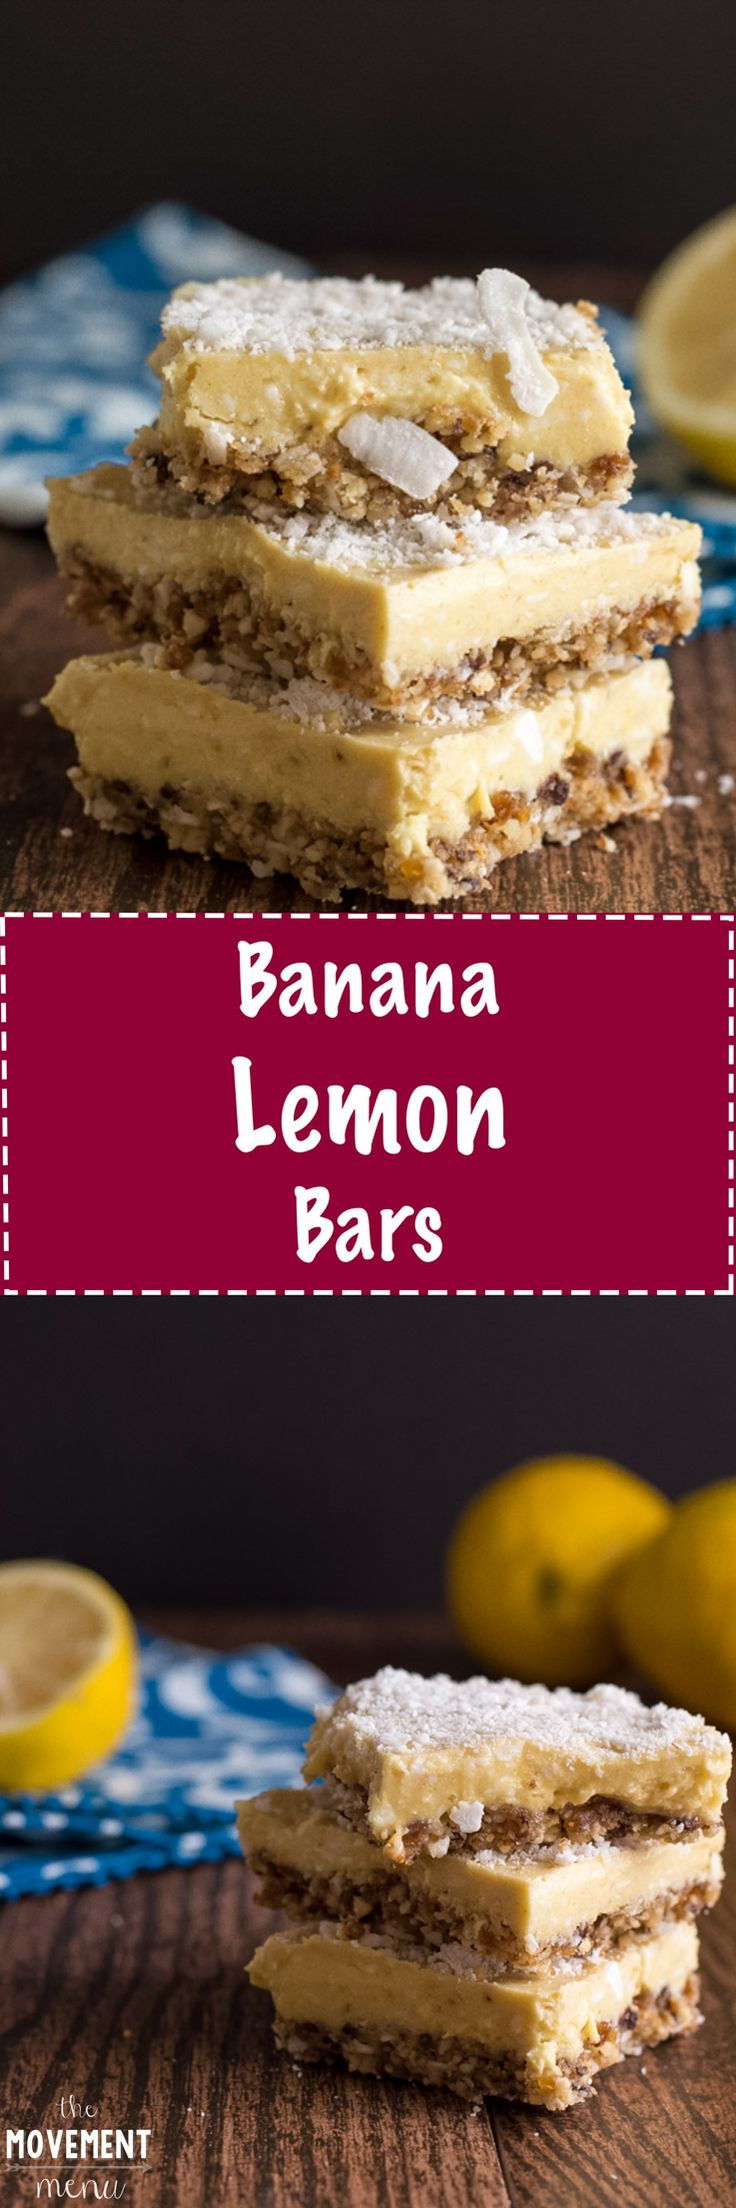 A lemon bars recipe that incorporates bananas and leaves out time in the oven to give you extra time for enjoyment. They're PALEO, vegan & raw. Oh, and they are impossible to put down. TheMovementMenu.com